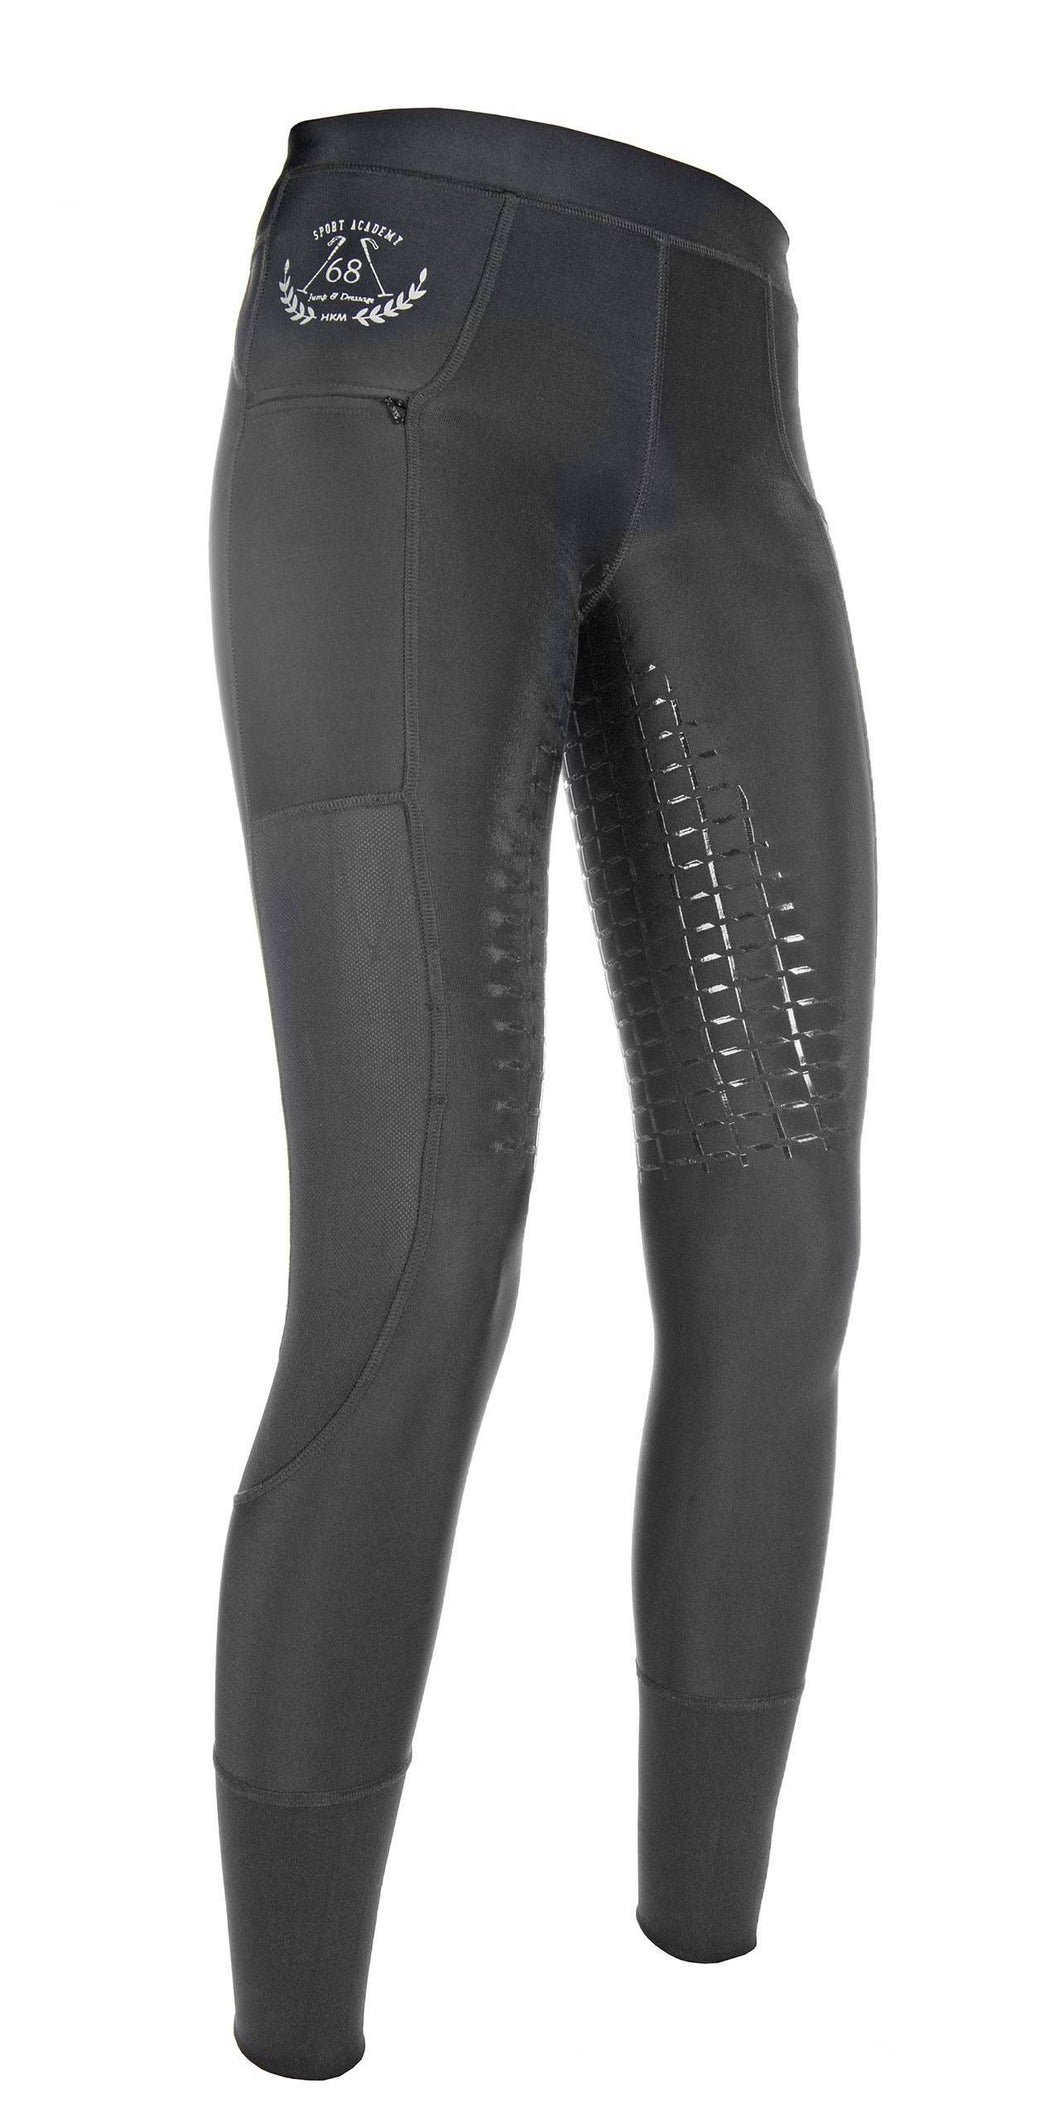 Riding leggings -Mesh- silicone full seat